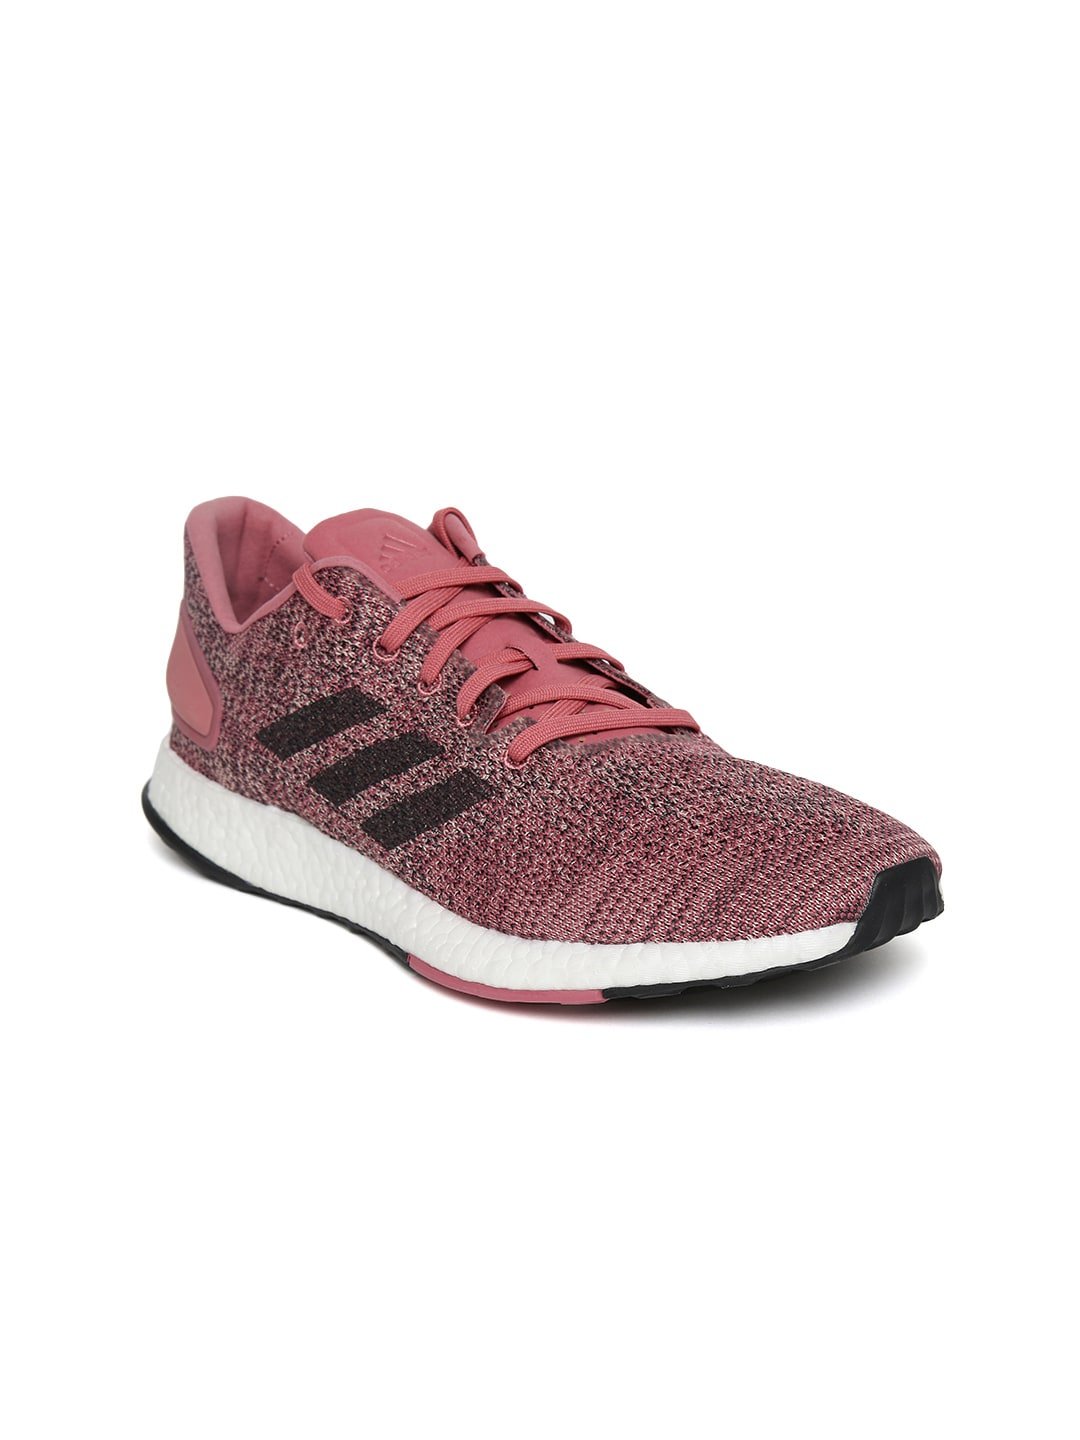 b2828a03598 Adidas Pink Shoes - Buy Adidas Pink Shoes online in India